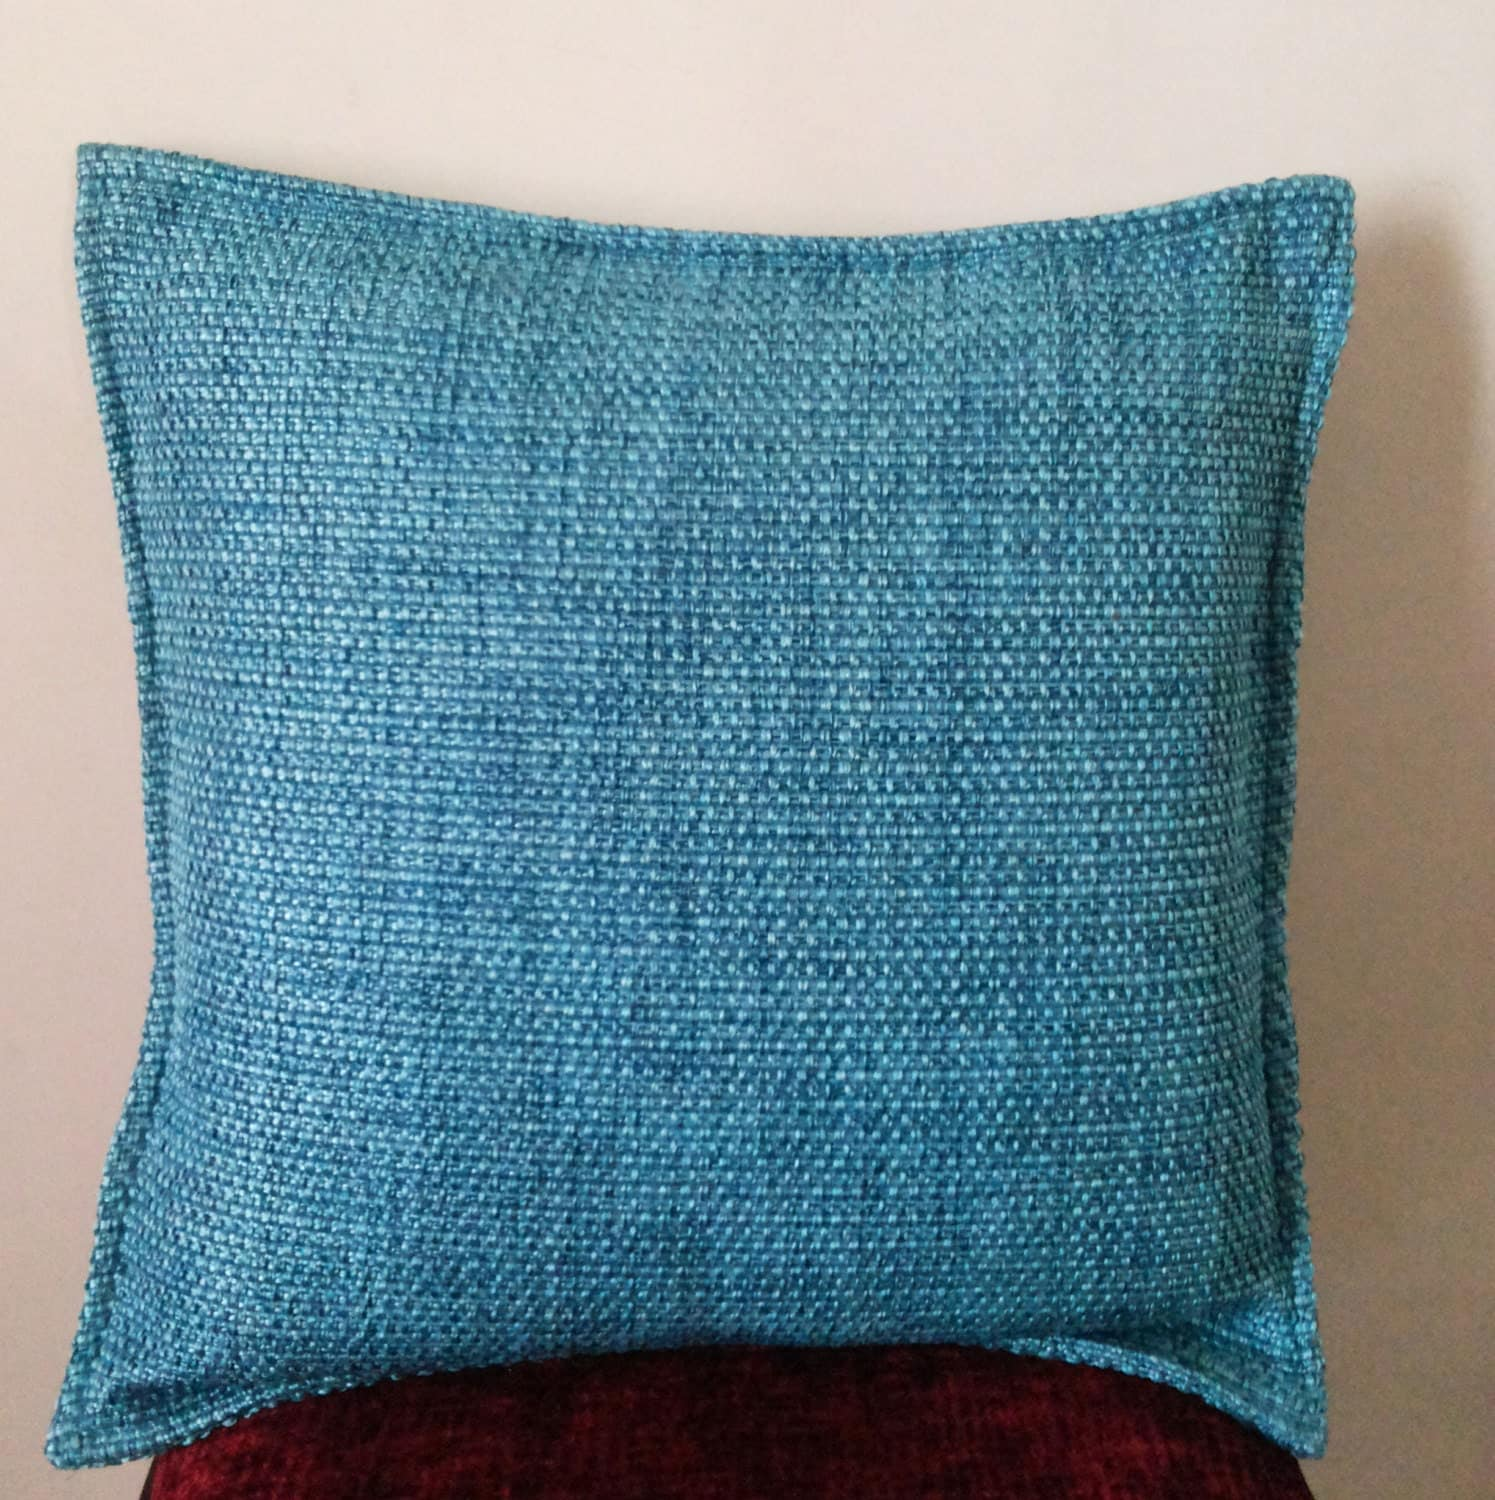 Throw Pillows Textured : Decorative Blue Throw Pillow 18x18 Cotton Textured Throw